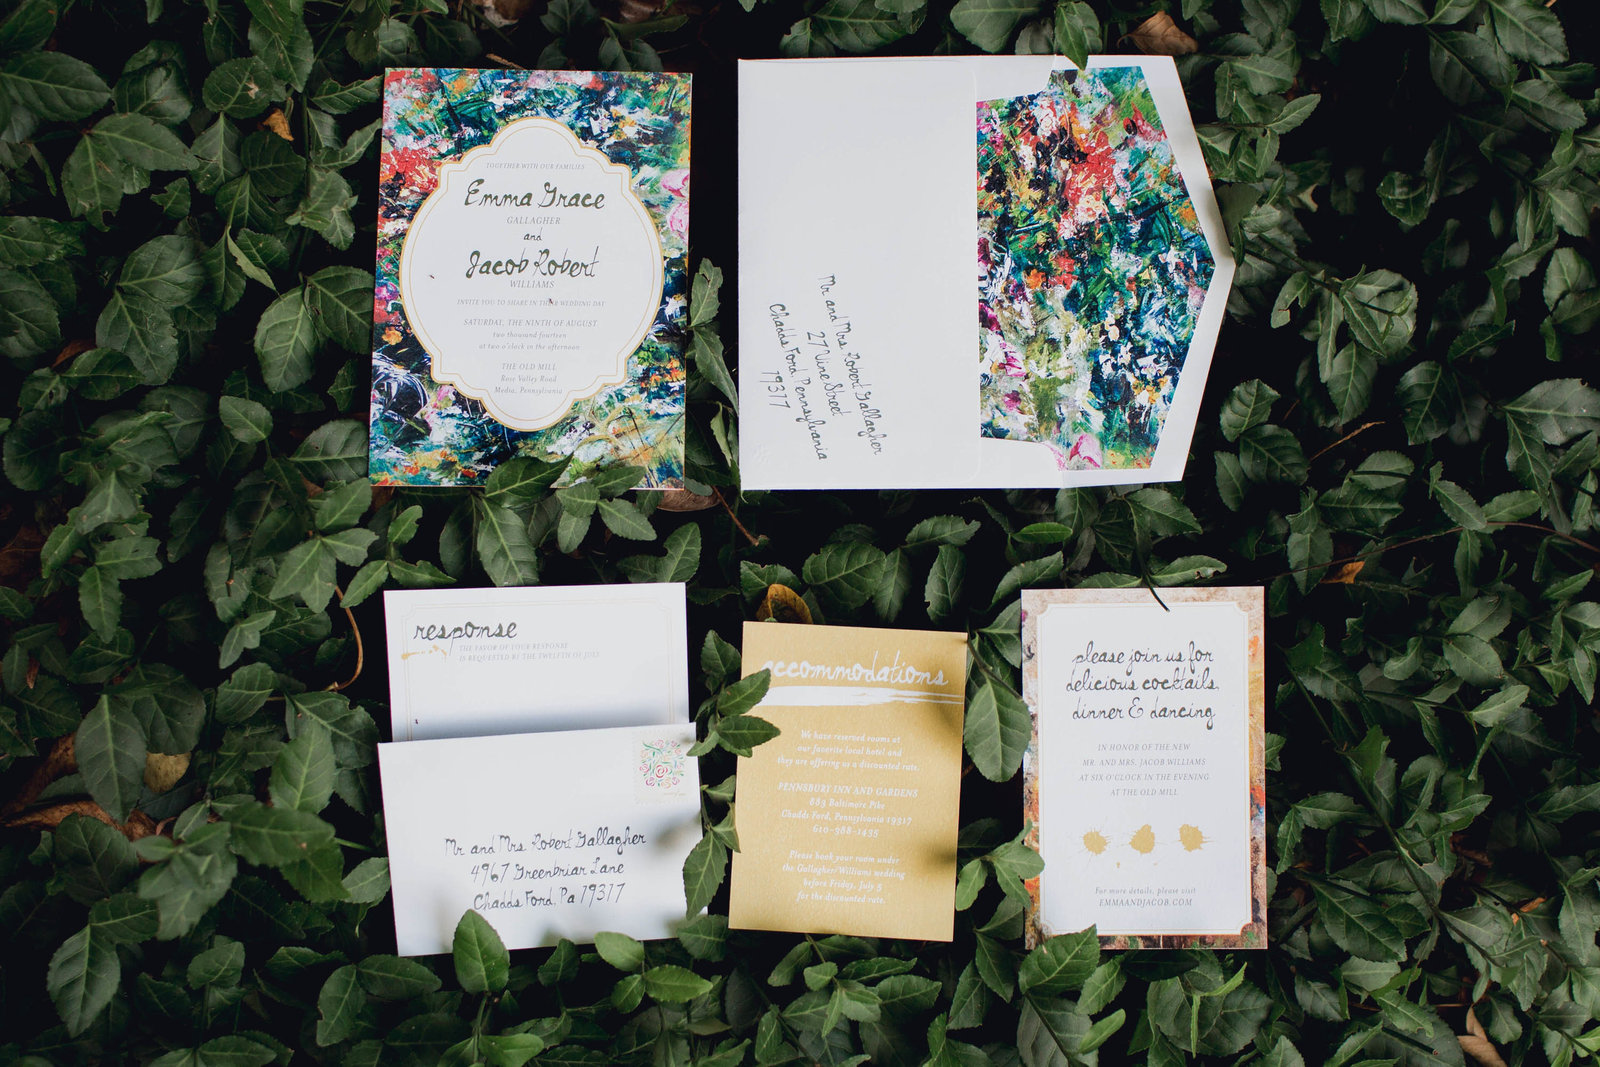 invite-suite-renoir-farm-table-spring-bridal-lookbook-leann-marshall-editorial-wedding-chicks-published-old-mill-media-photography-papertree-studio-kate-timbers321